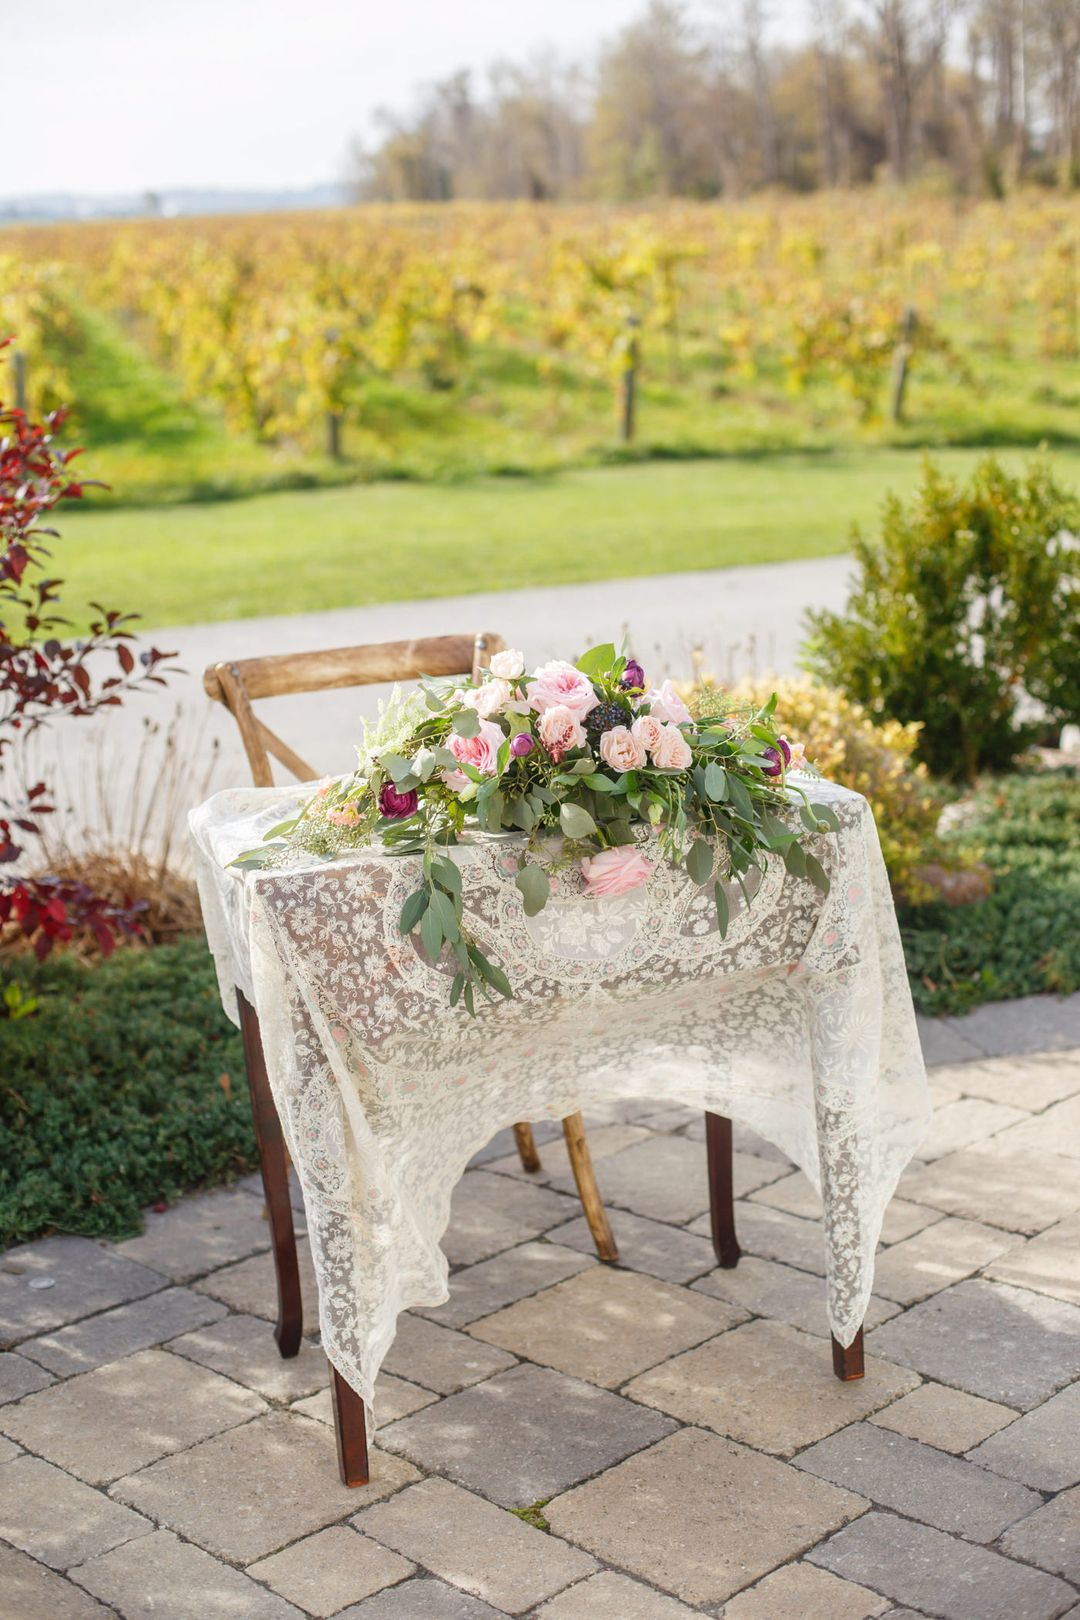 Rustic Signing Table For Andrea Dennis Vineyard Patio Ceremony October 21 2017 Signing Table Wedding Ceremony Signing Table Wedding Ceremony Signing Table